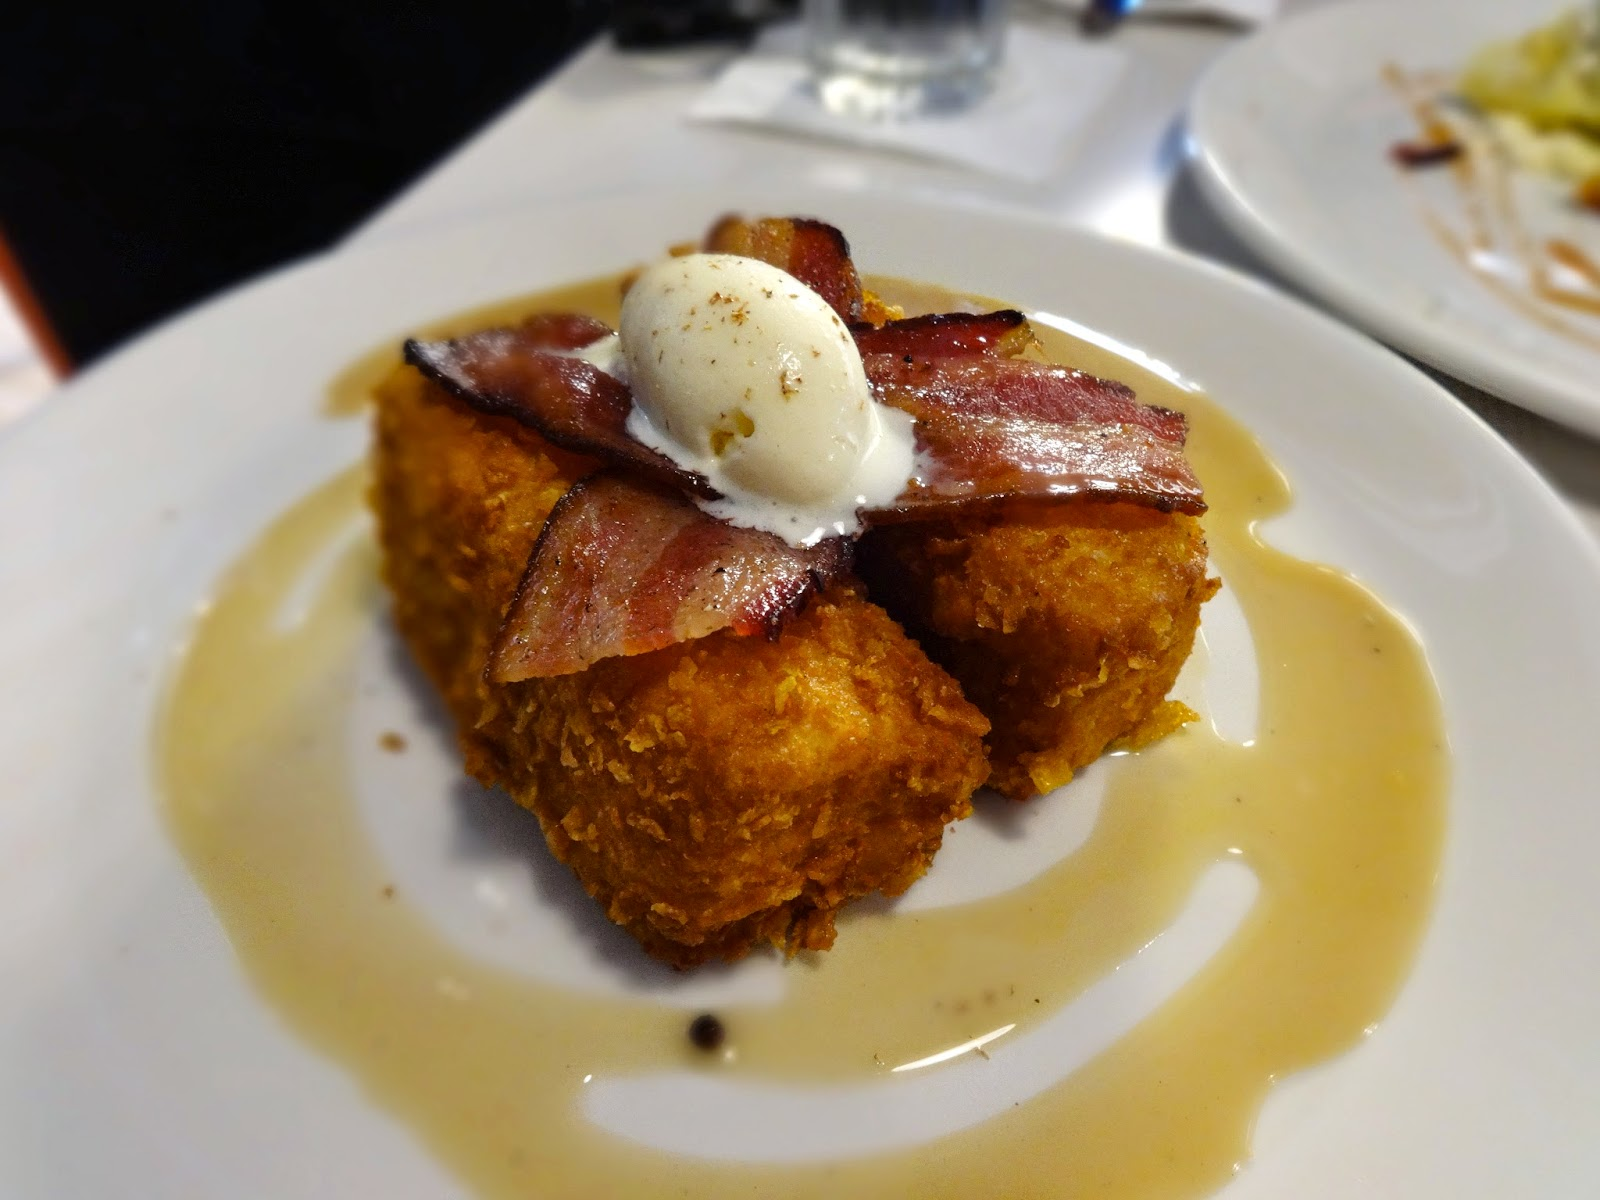 Cornflake French Toast reminded me of Burger King's French Toast ...